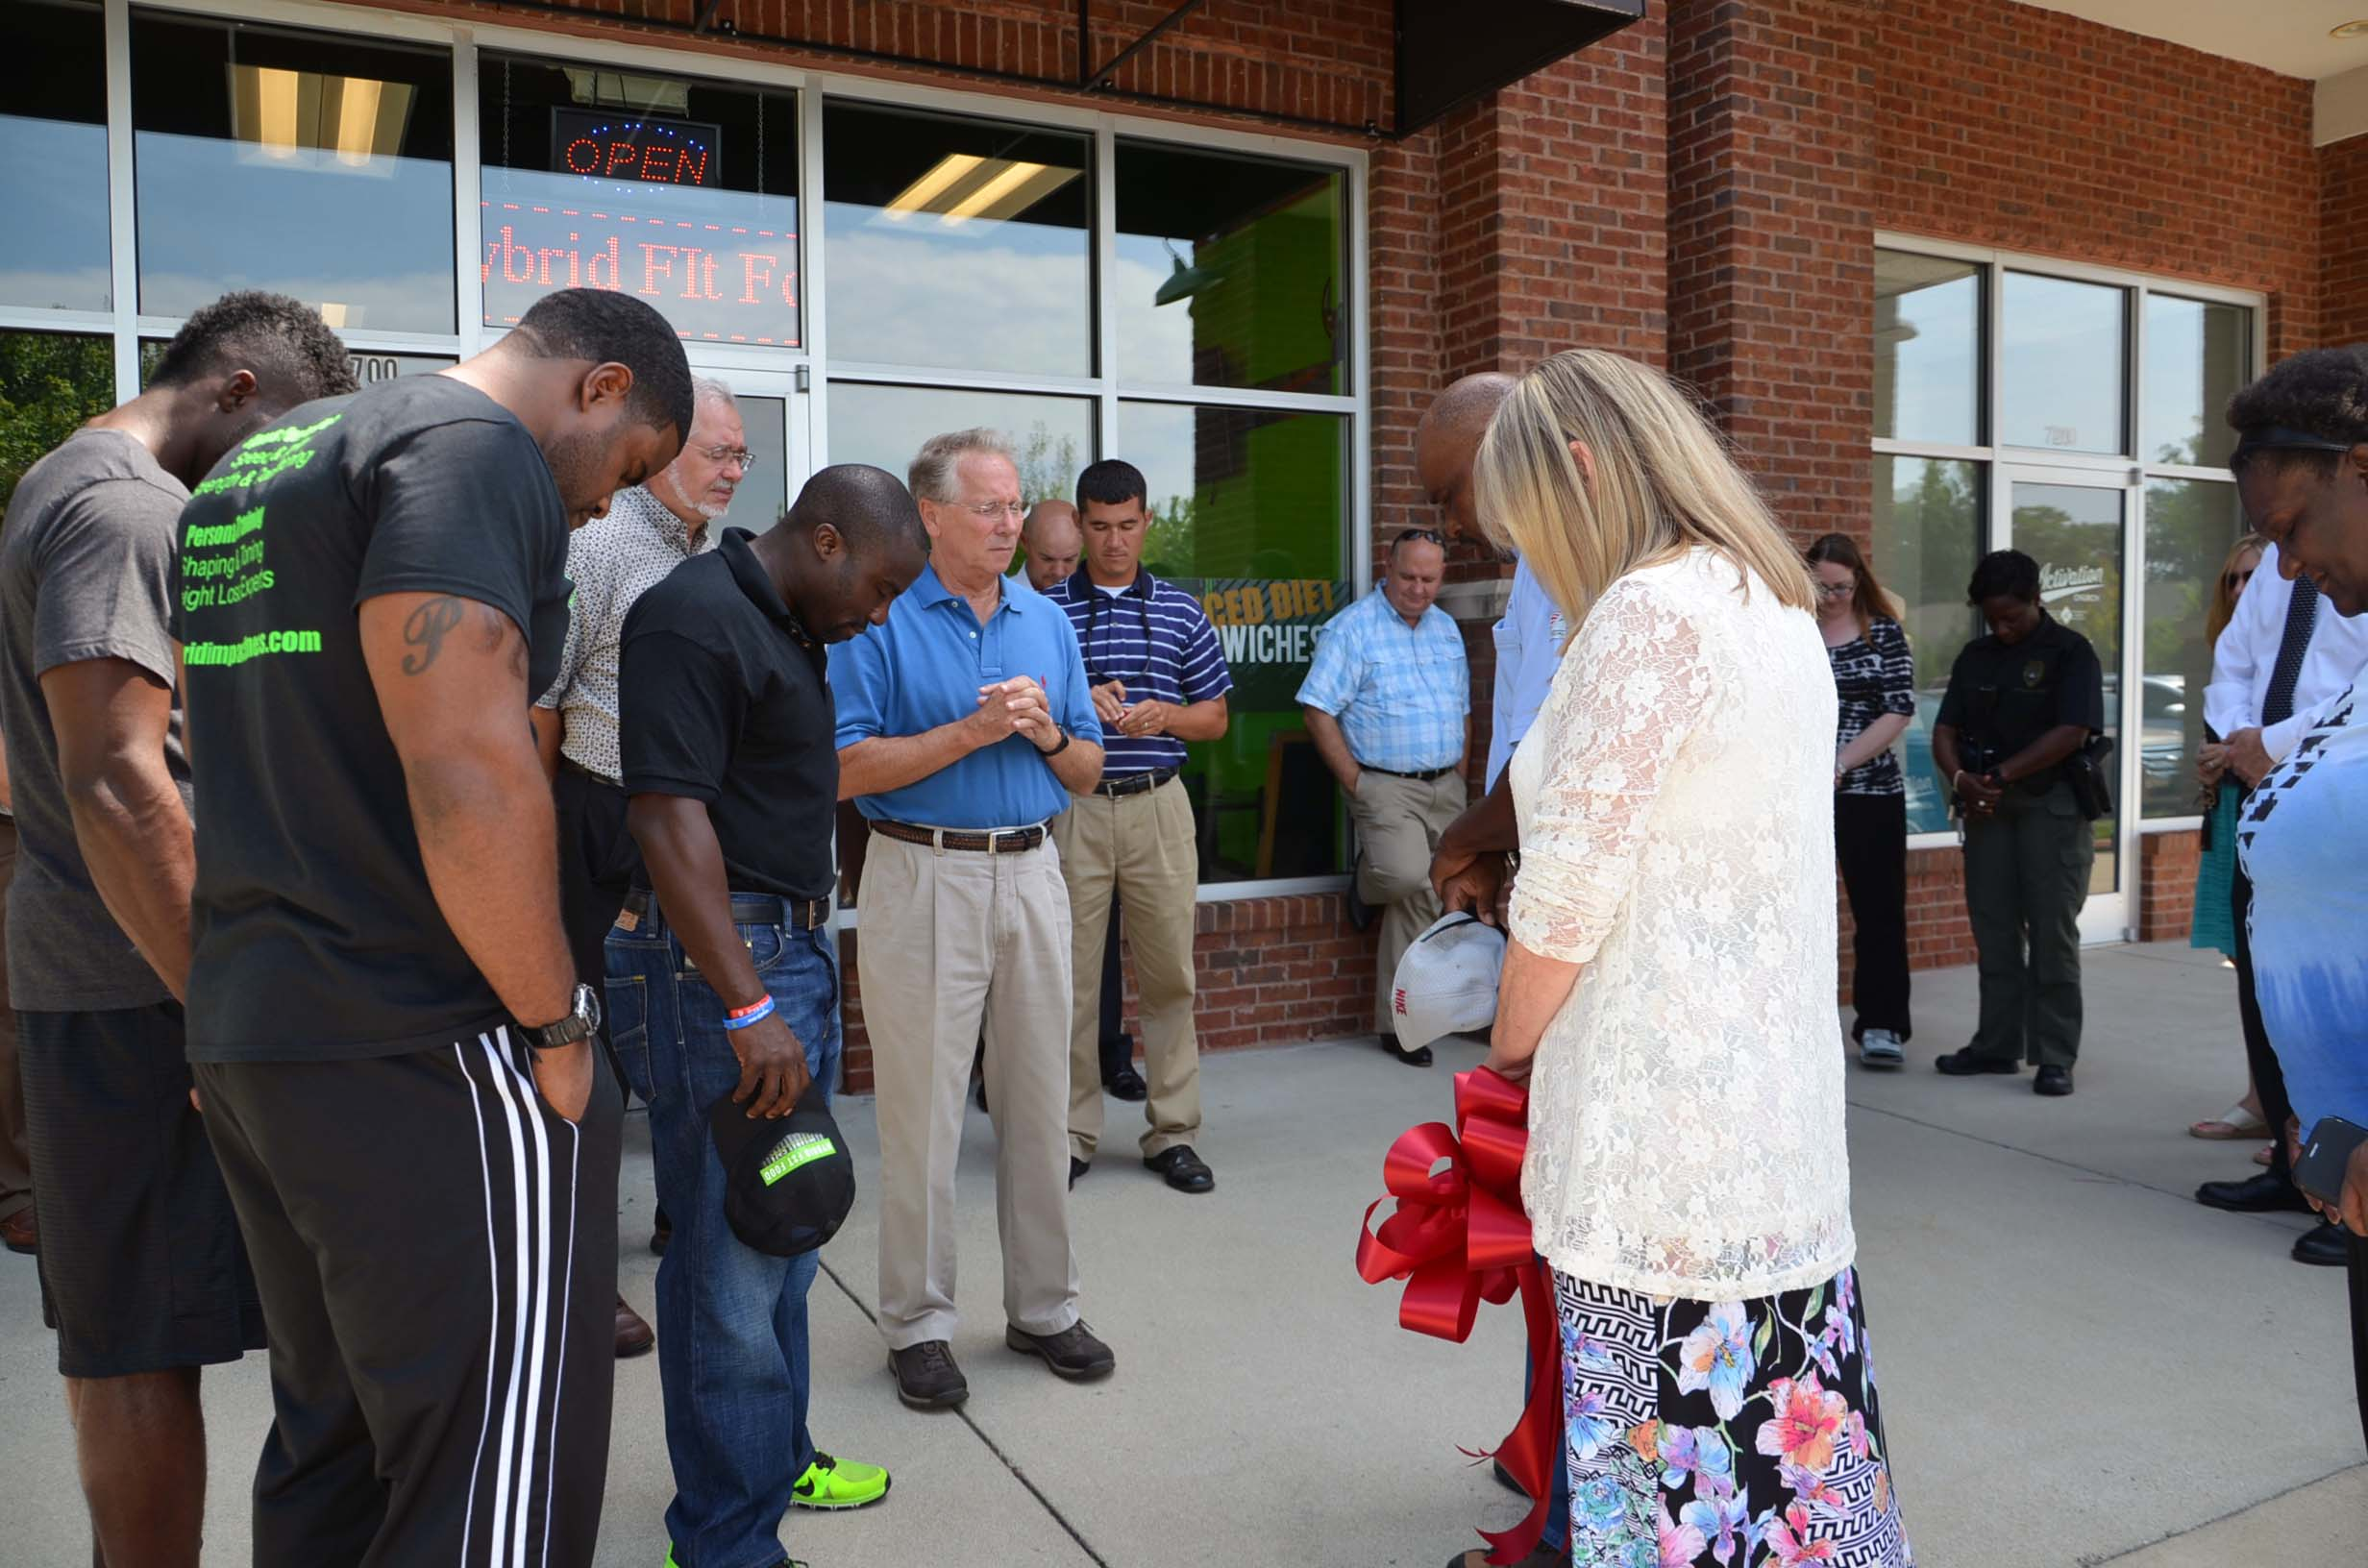 Ribbon Cutting for Hybrid Fit Food 4